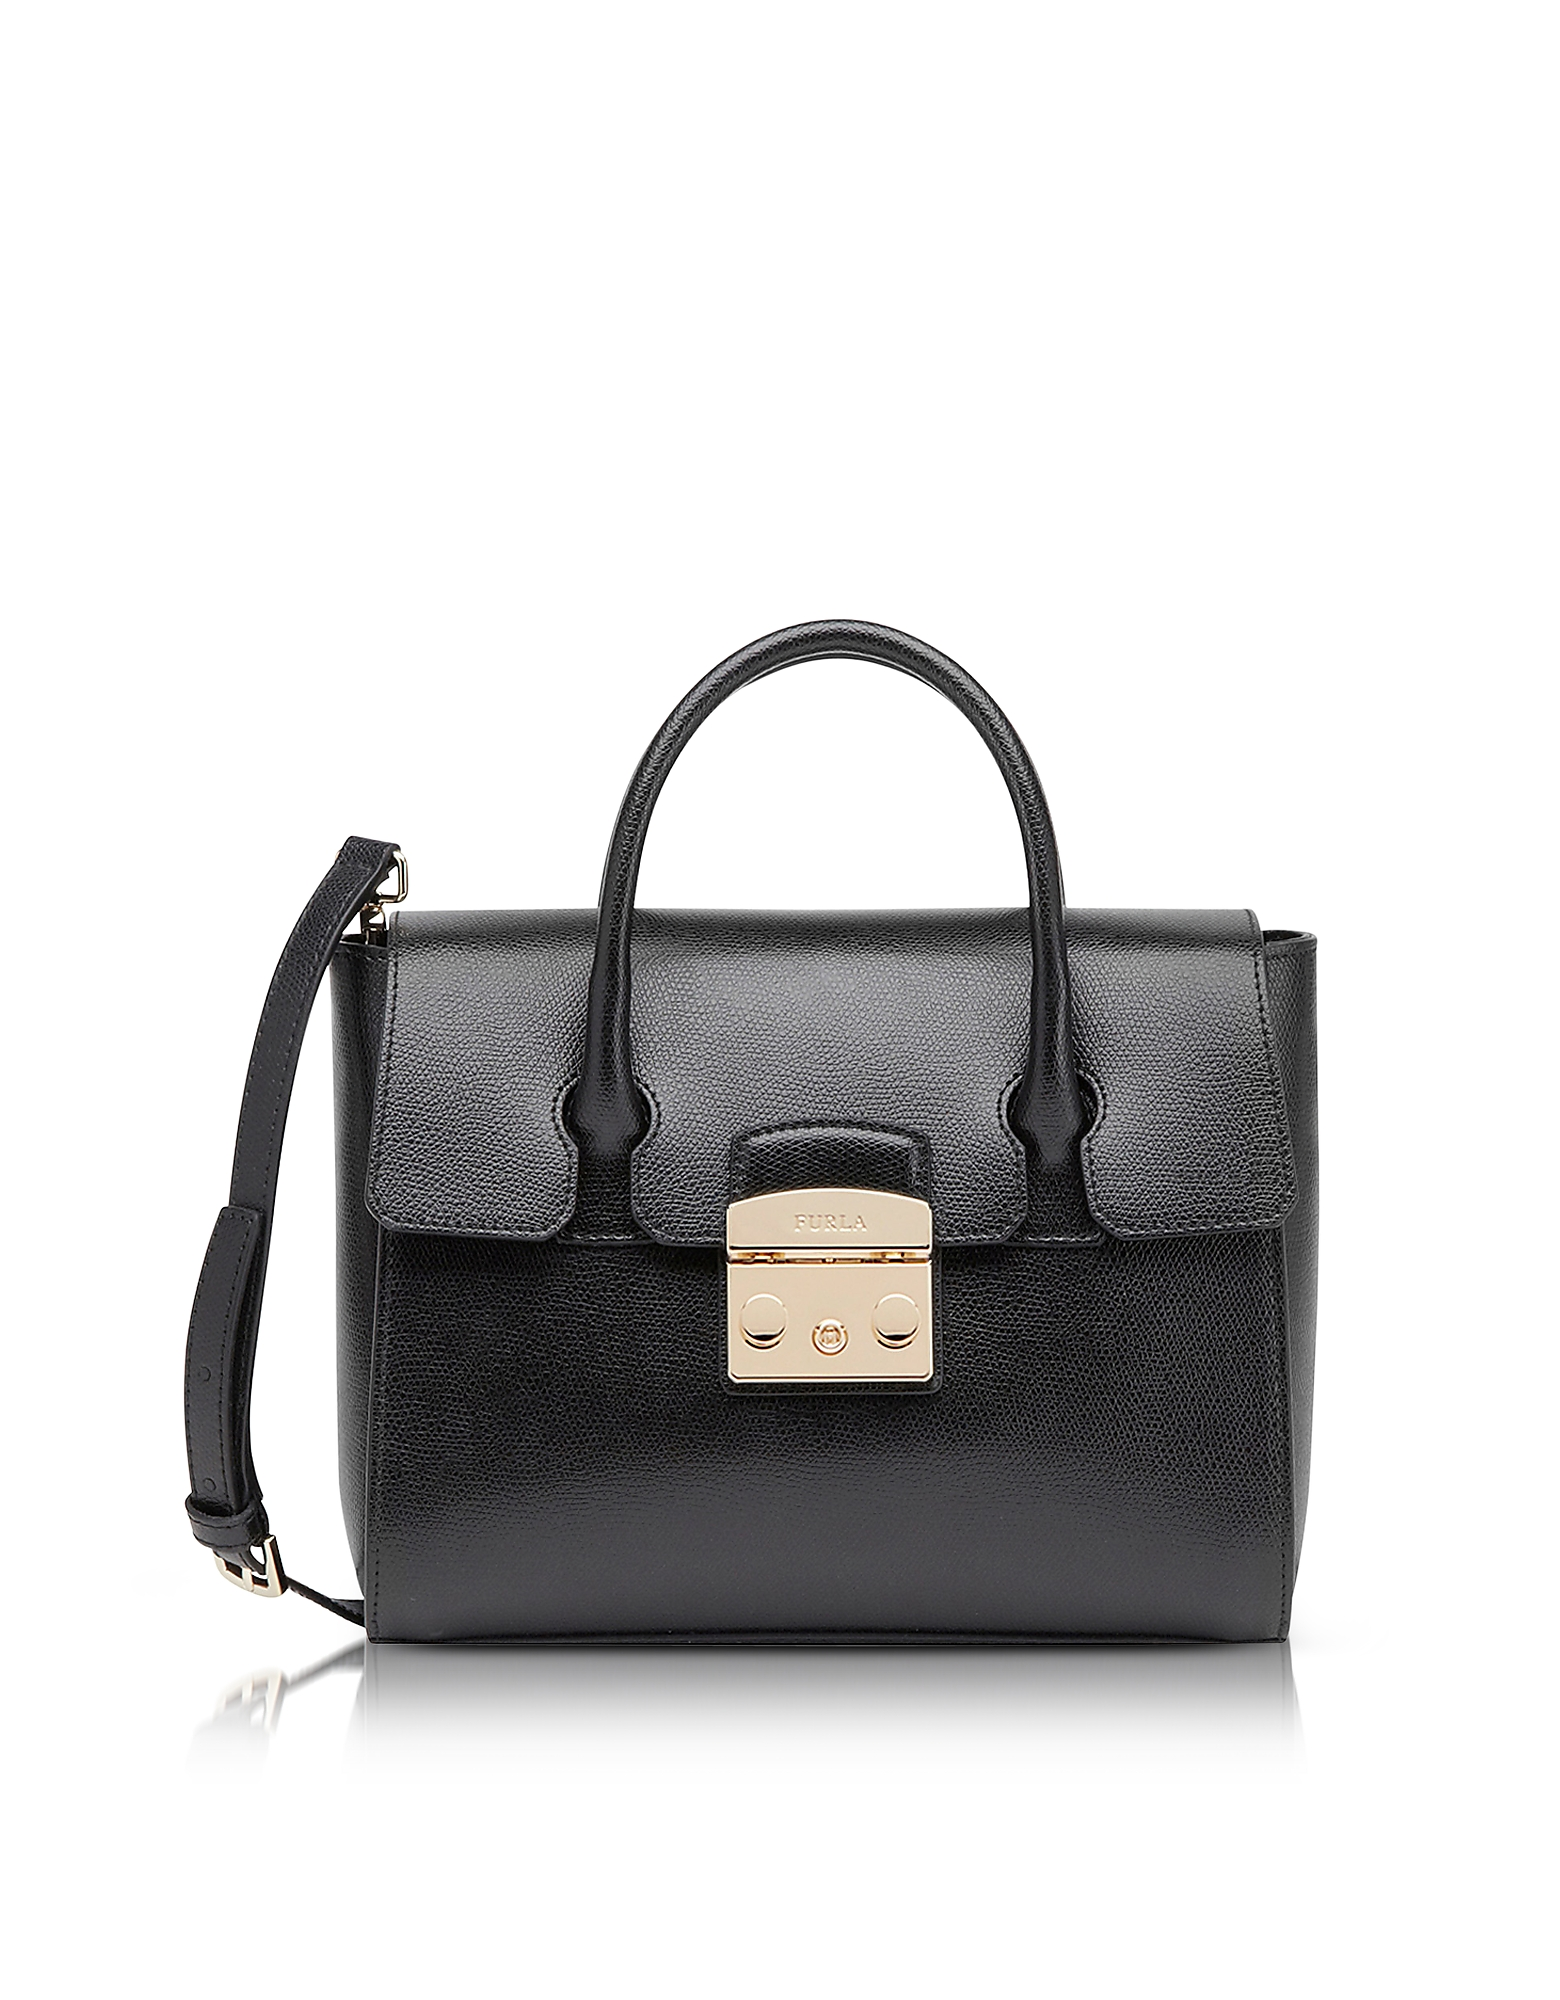 Furla Handbags, Onyx Grained Leather Metropolis Small Satchel